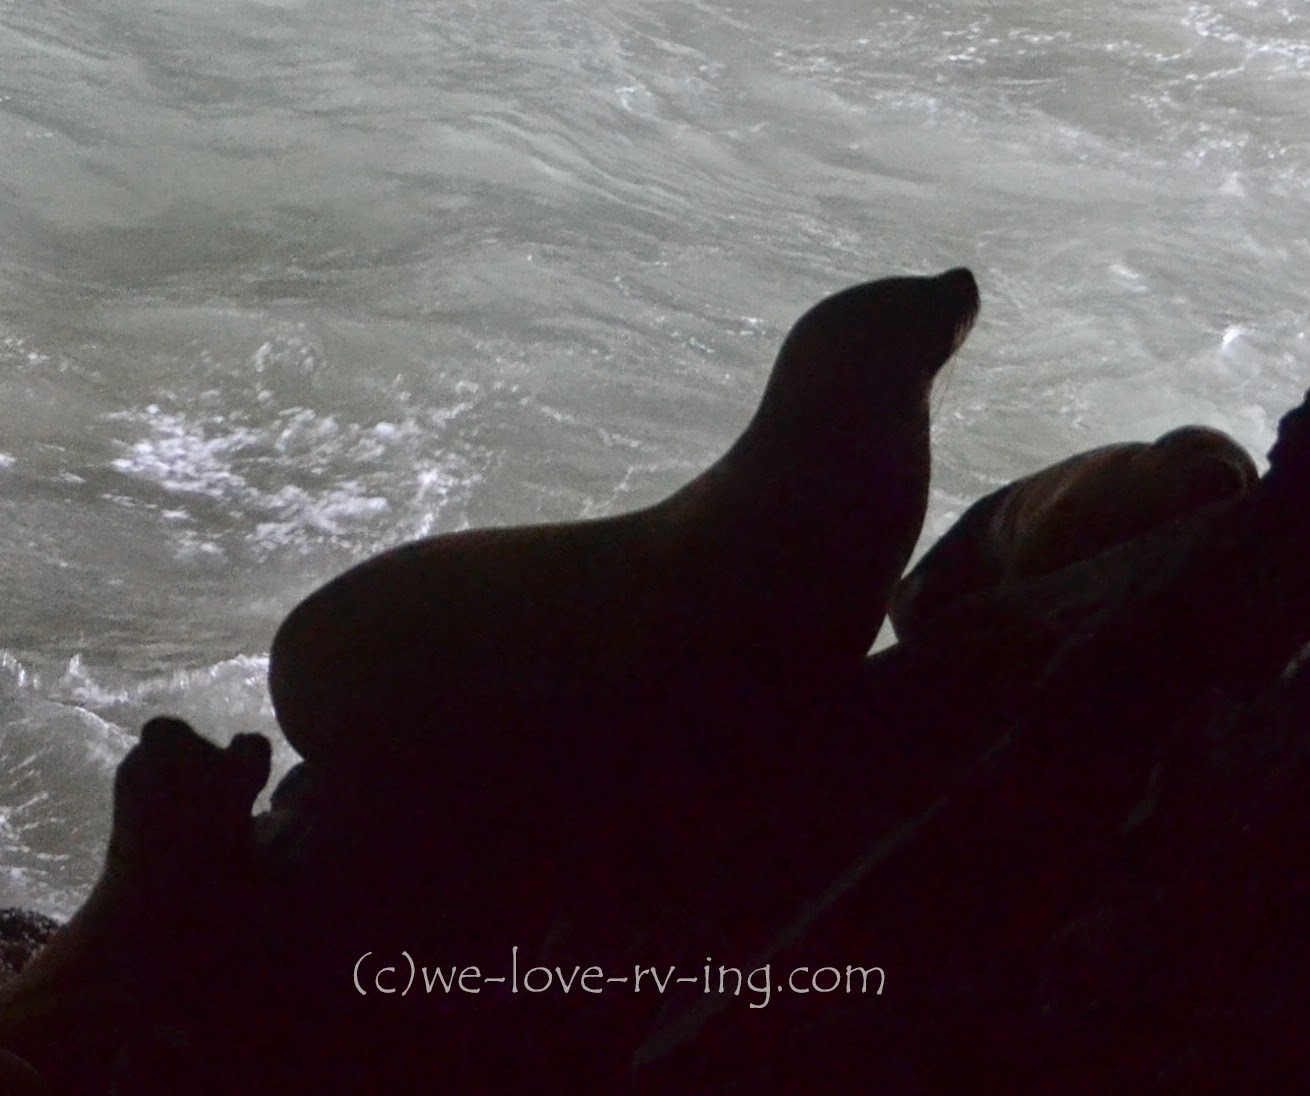 The silhouette of the sea lion